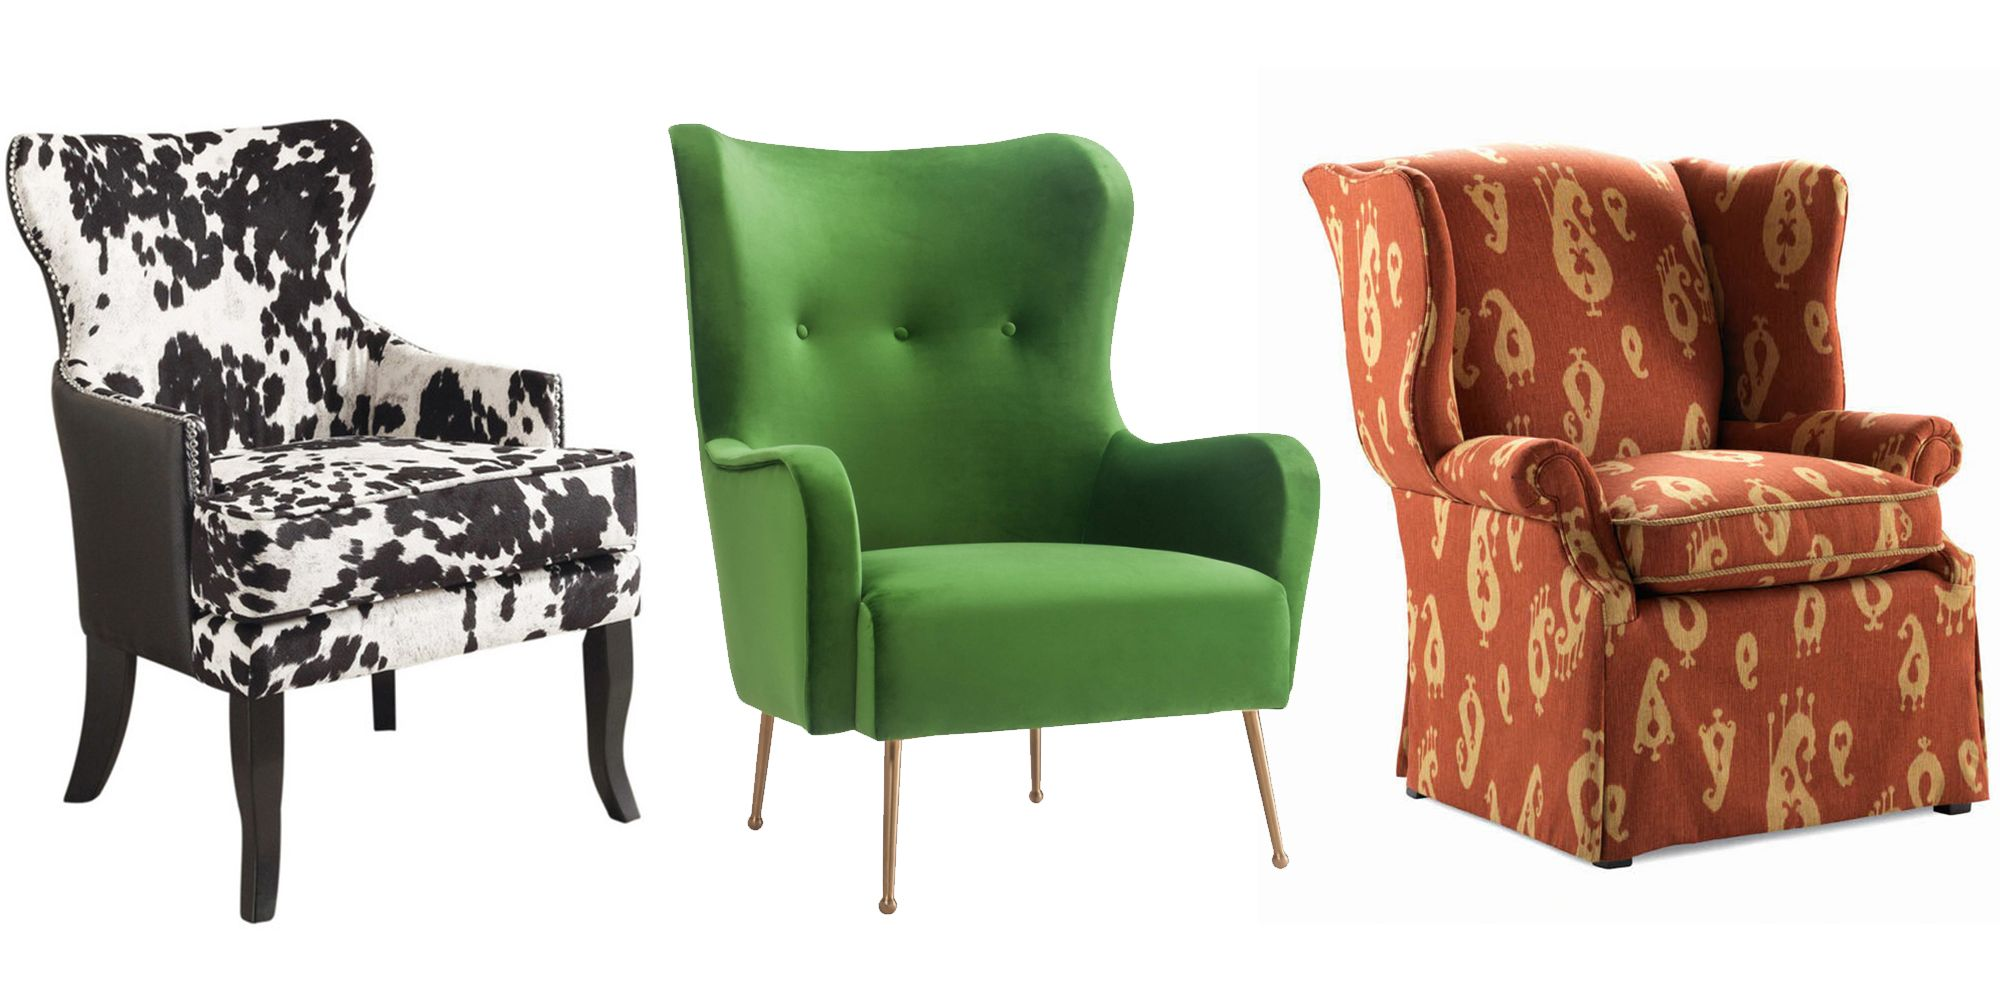 29 Wingback Chairs That Will Spice Up Any Room